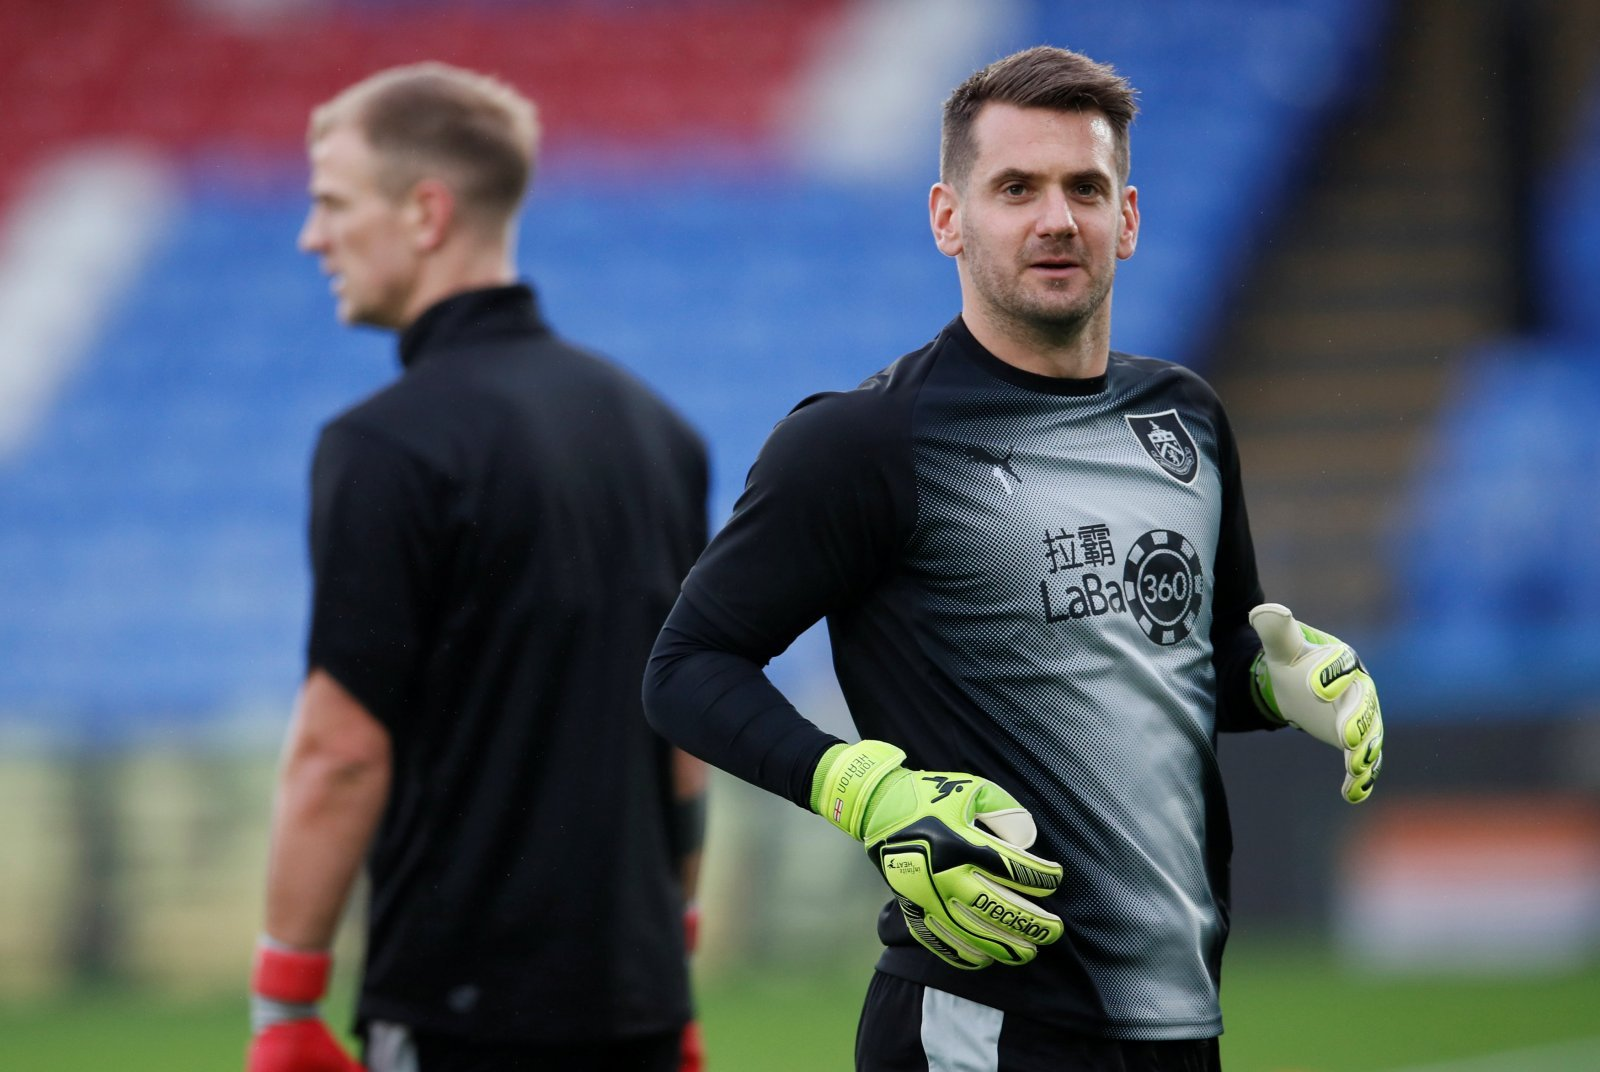 Aston Villa: Fresh bid being prepared for Tom Heaton